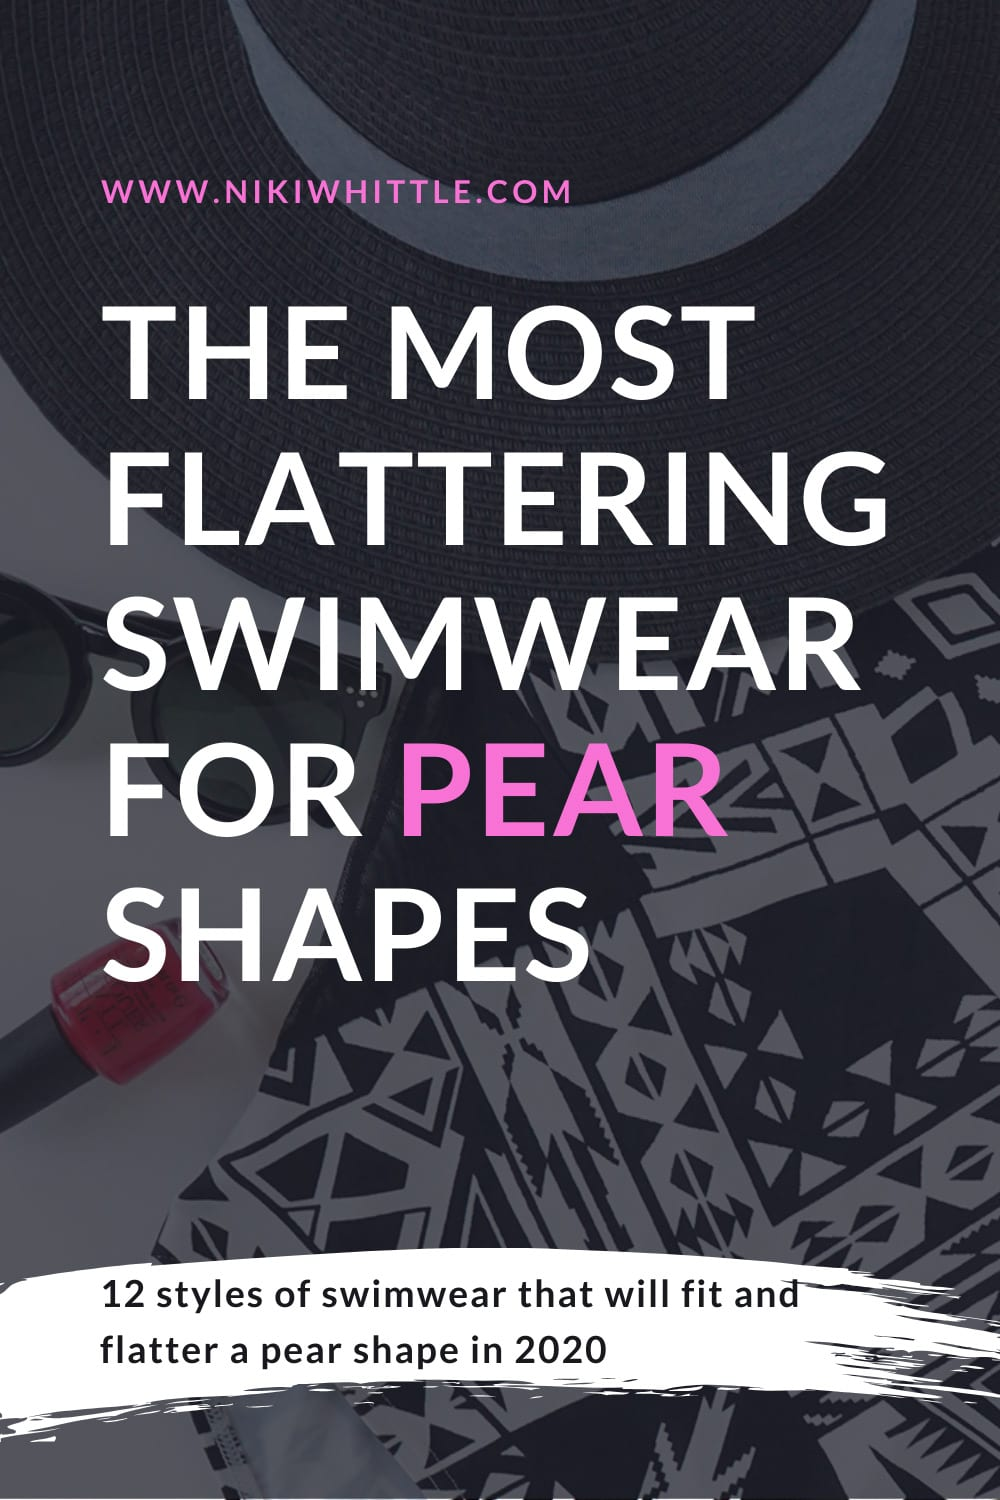 The best swimwear for pear shapes